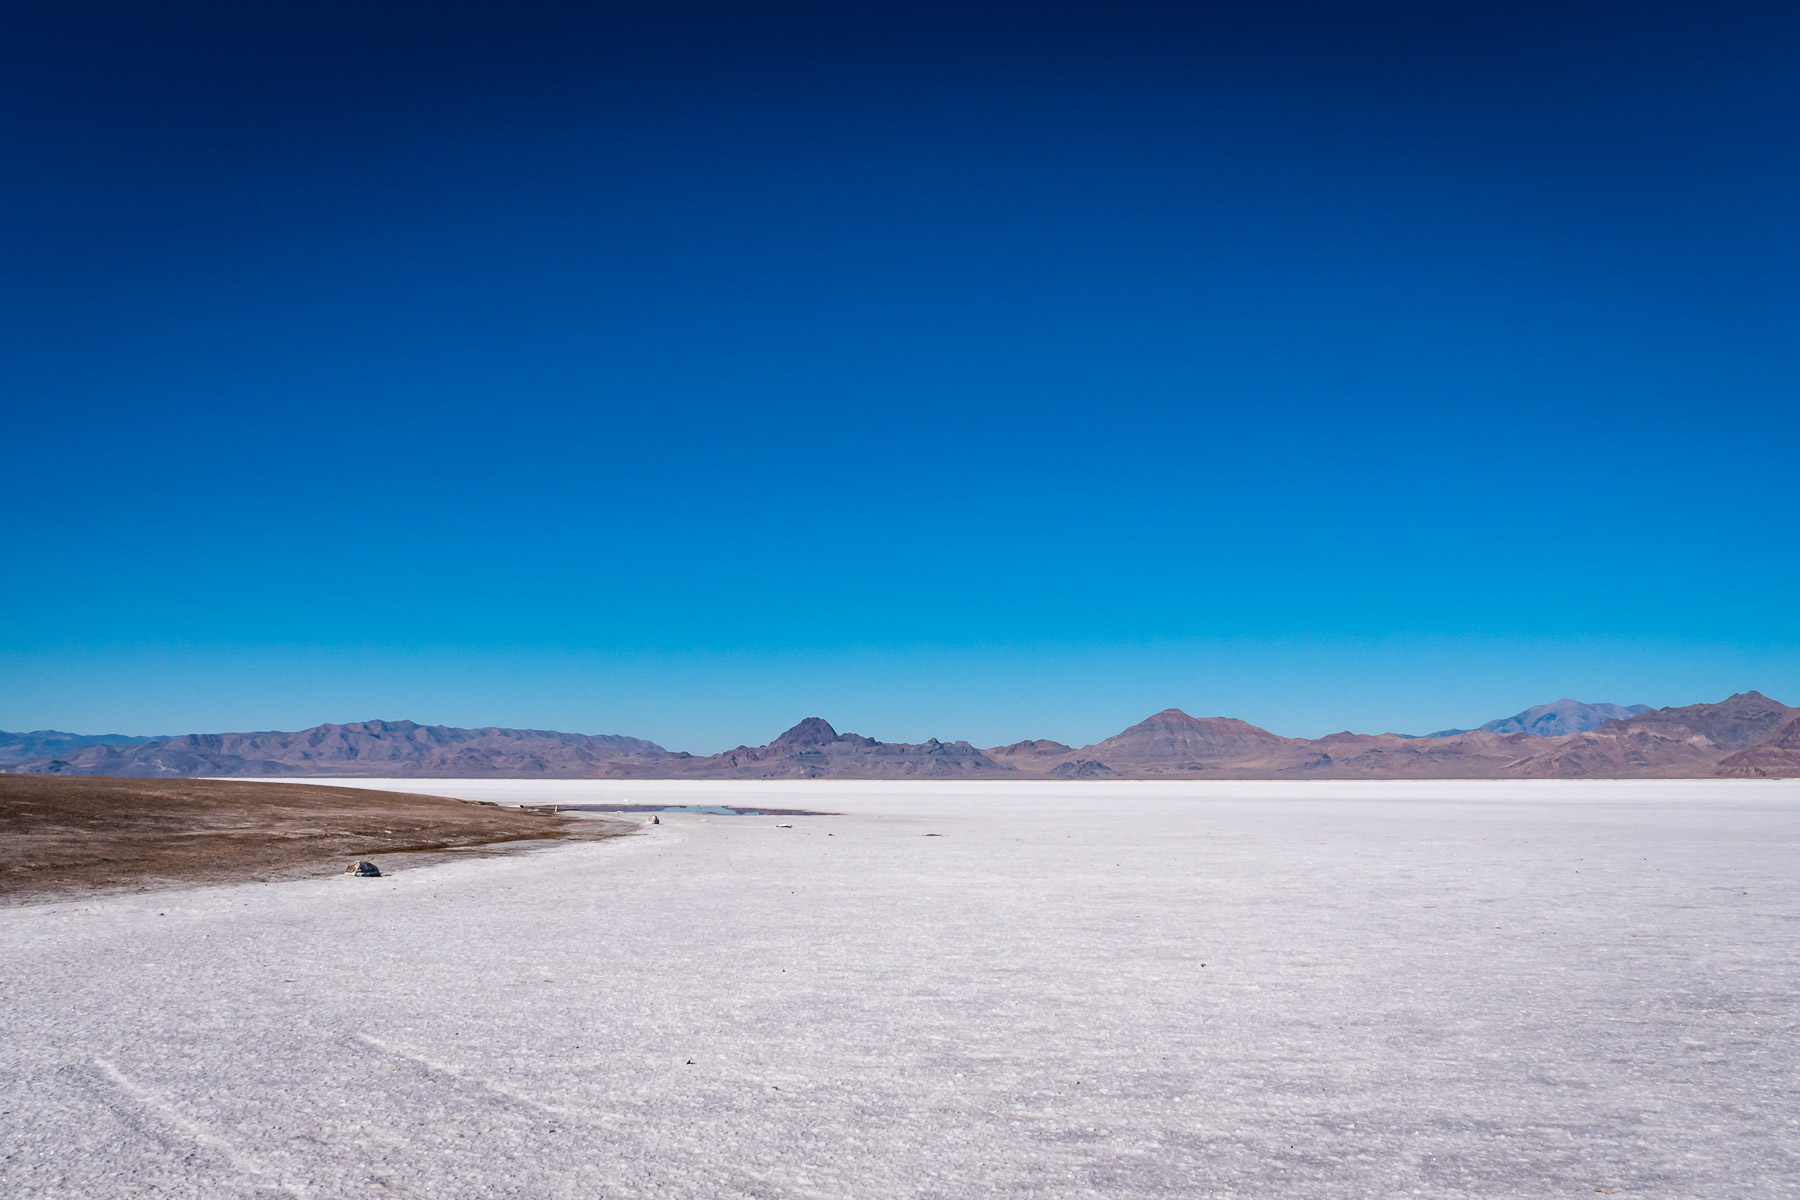 The expanse of Utah's Bonneville Salt Flats stretches into the distance.